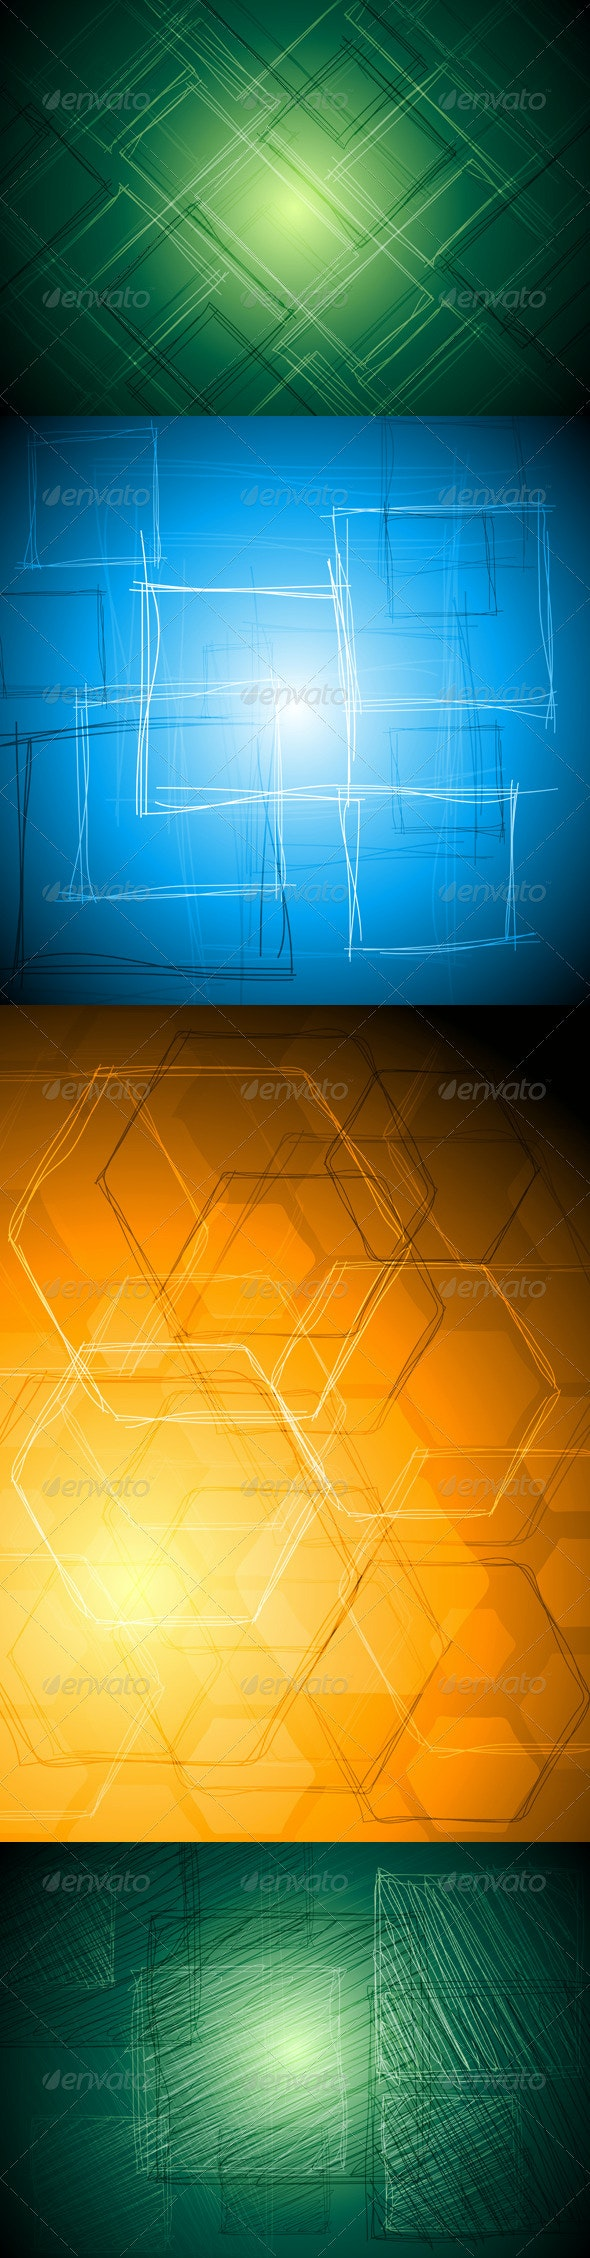 Abstract Tech Vector Drawing - Backgrounds Decorative